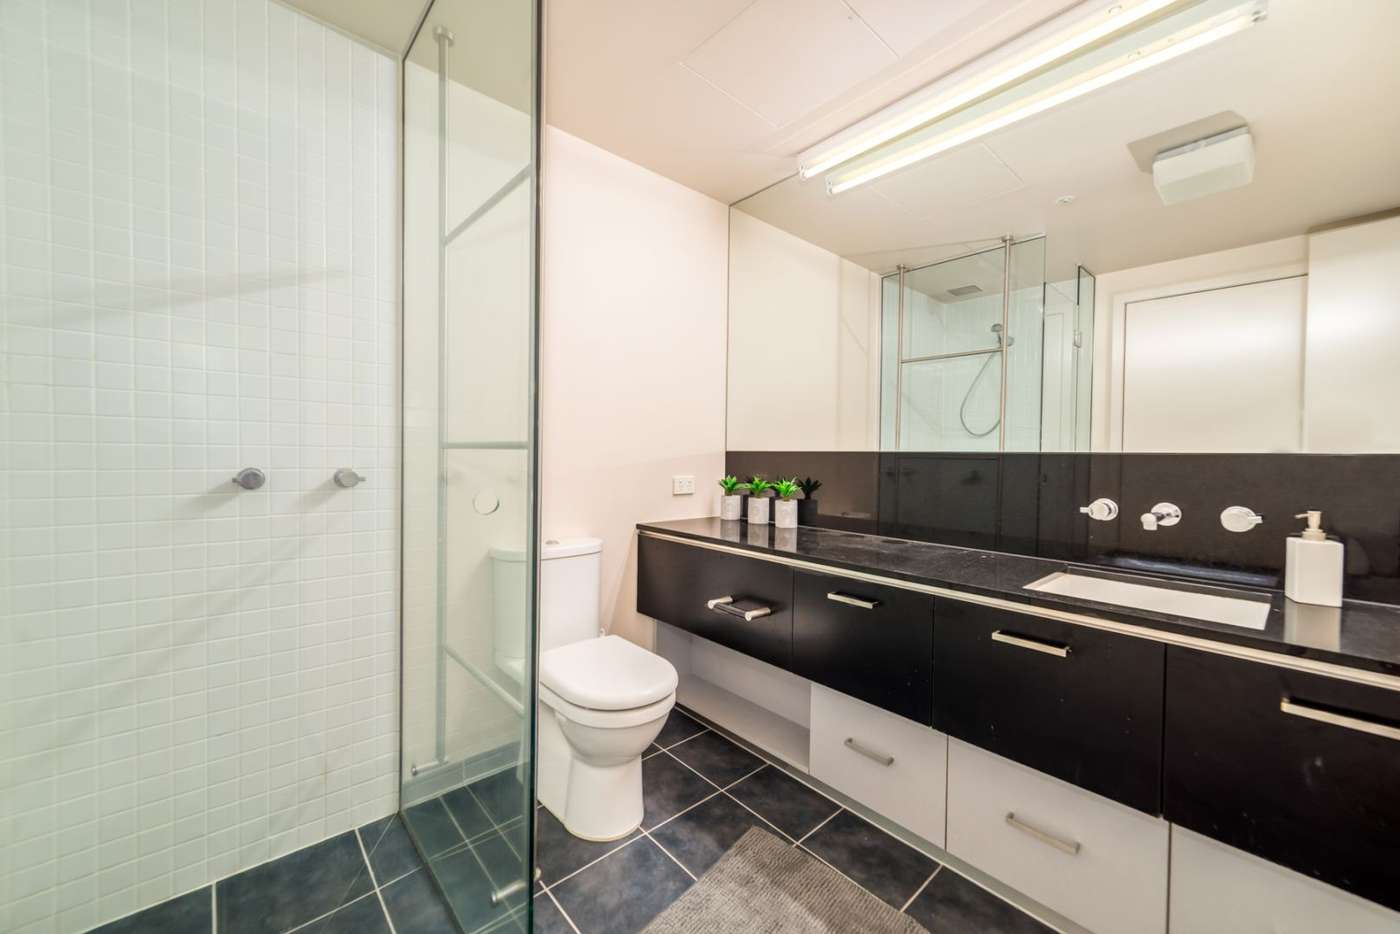 Fifth view of Homely apartment listing, 906/50 Lorimer Street, Docklands VIC 3008